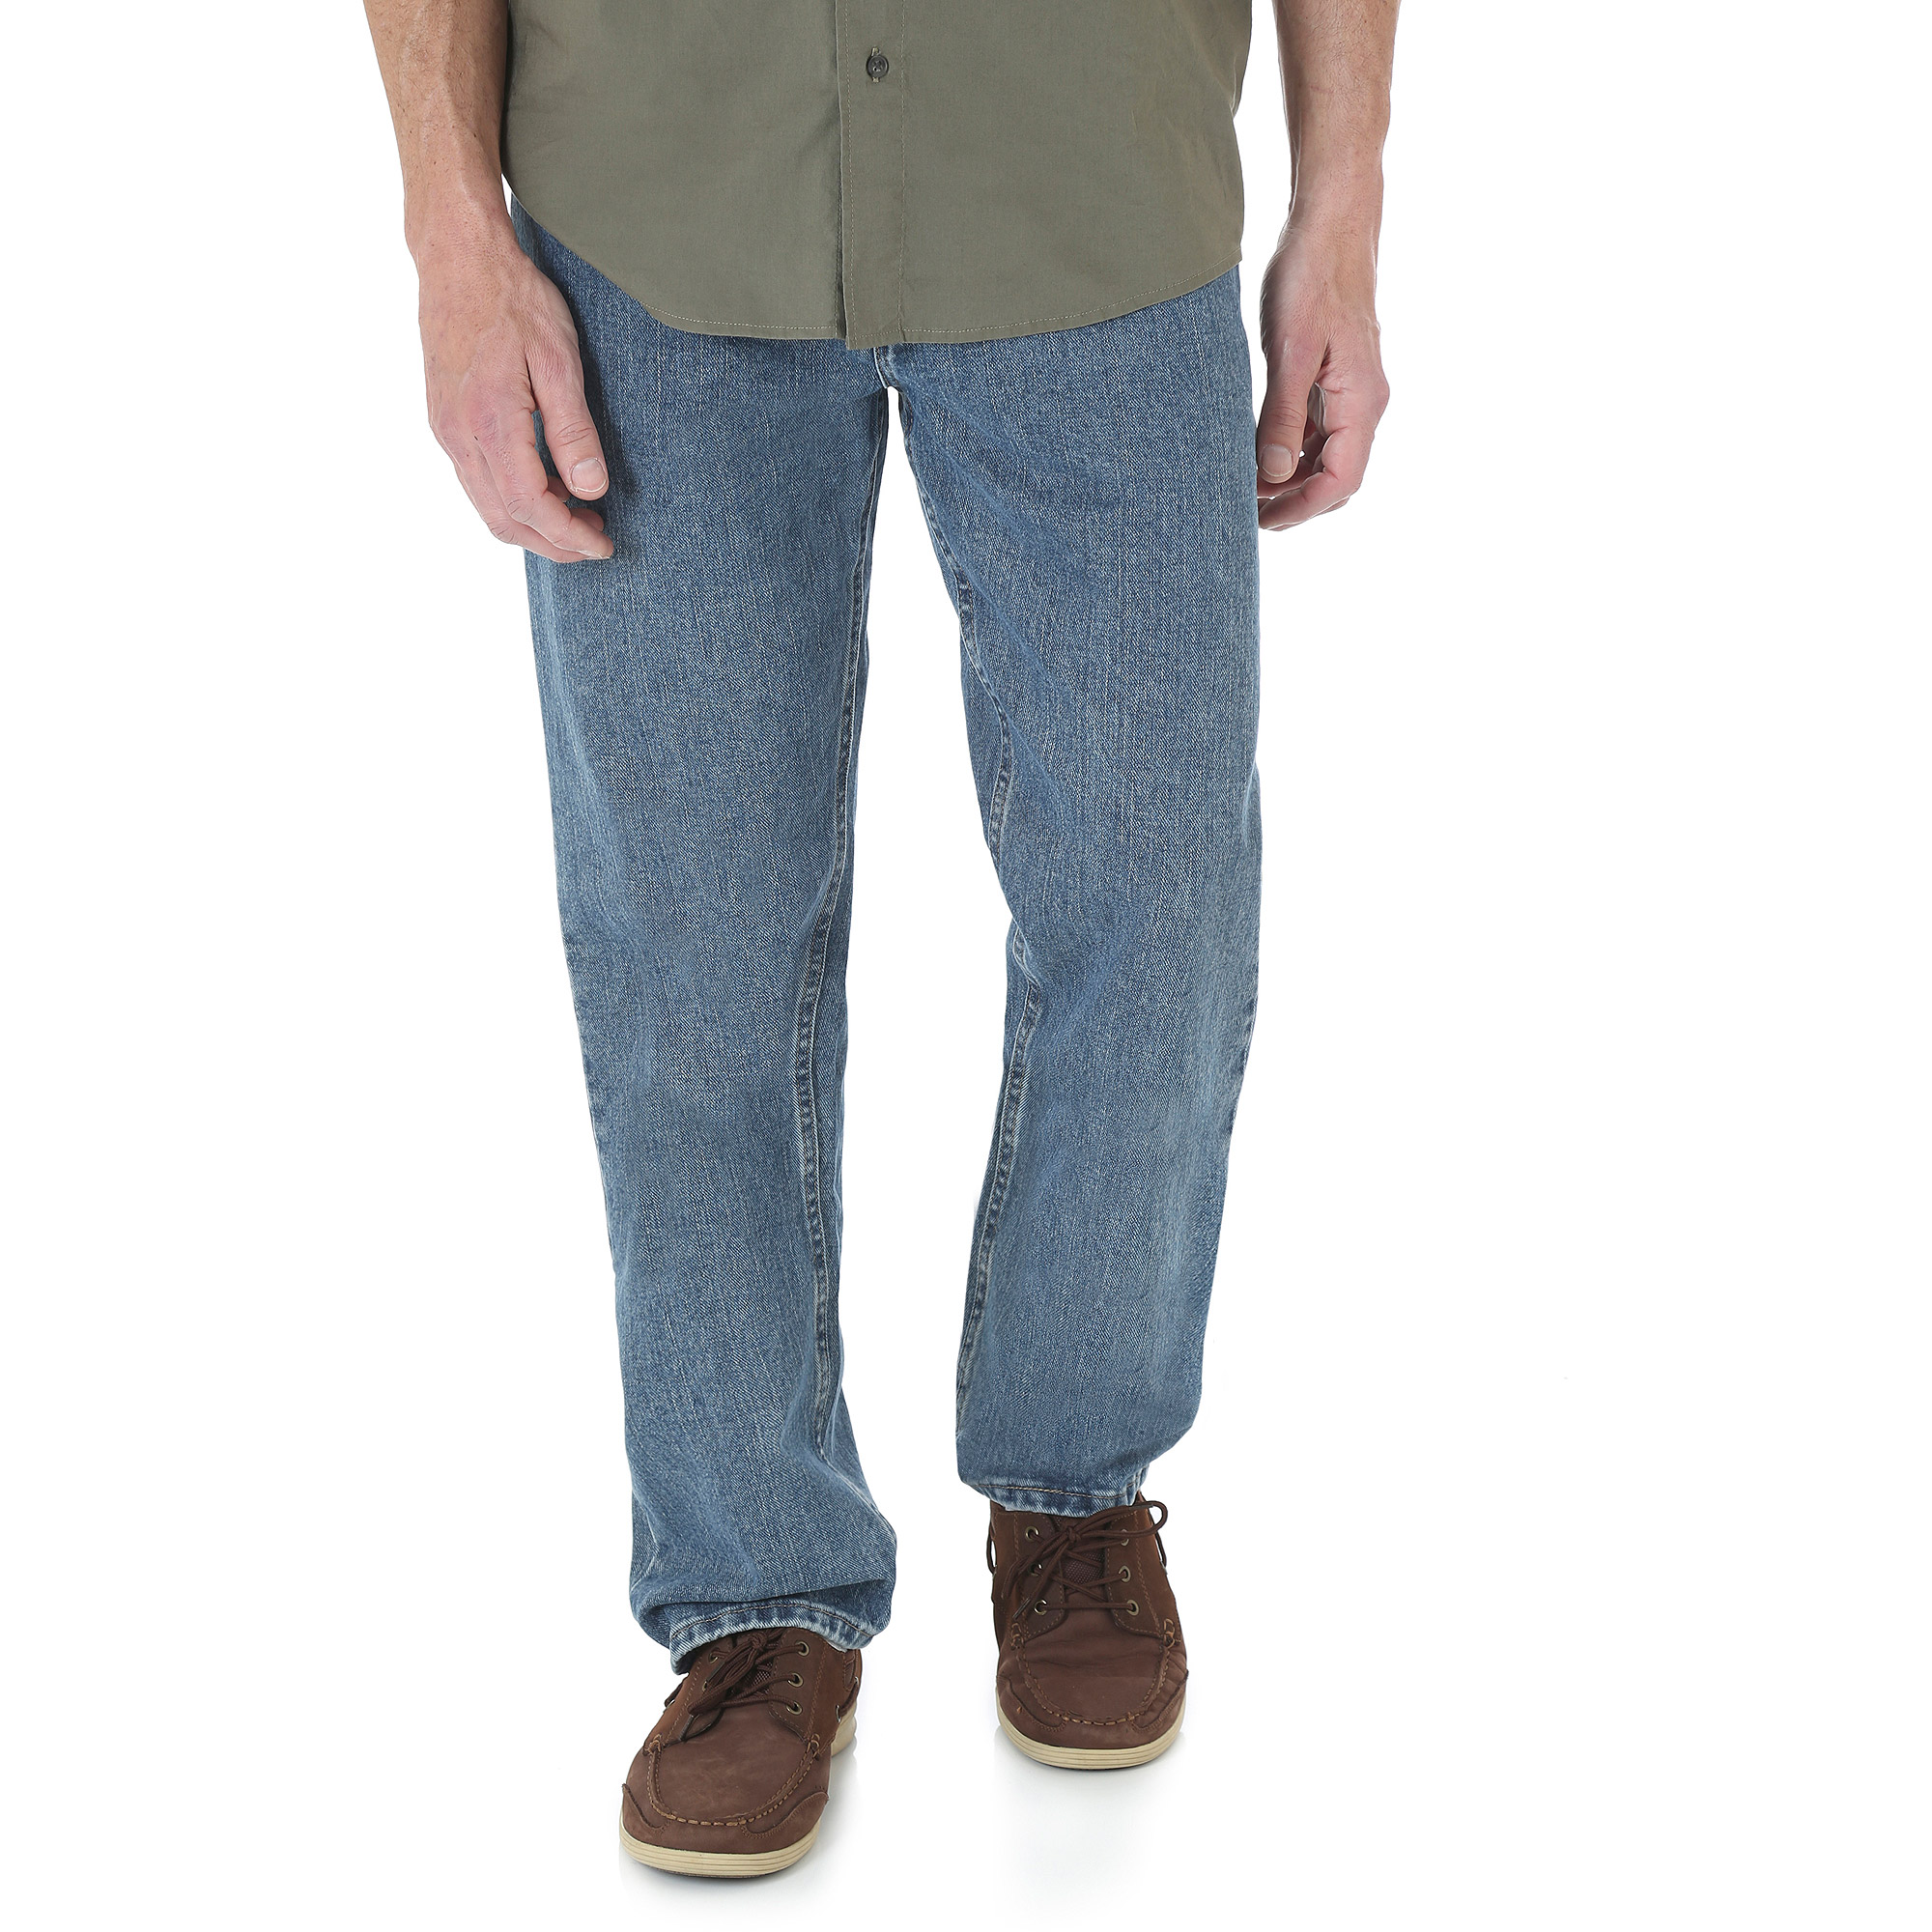 Wrangler Tall Men's Relaxed Fit Jeans